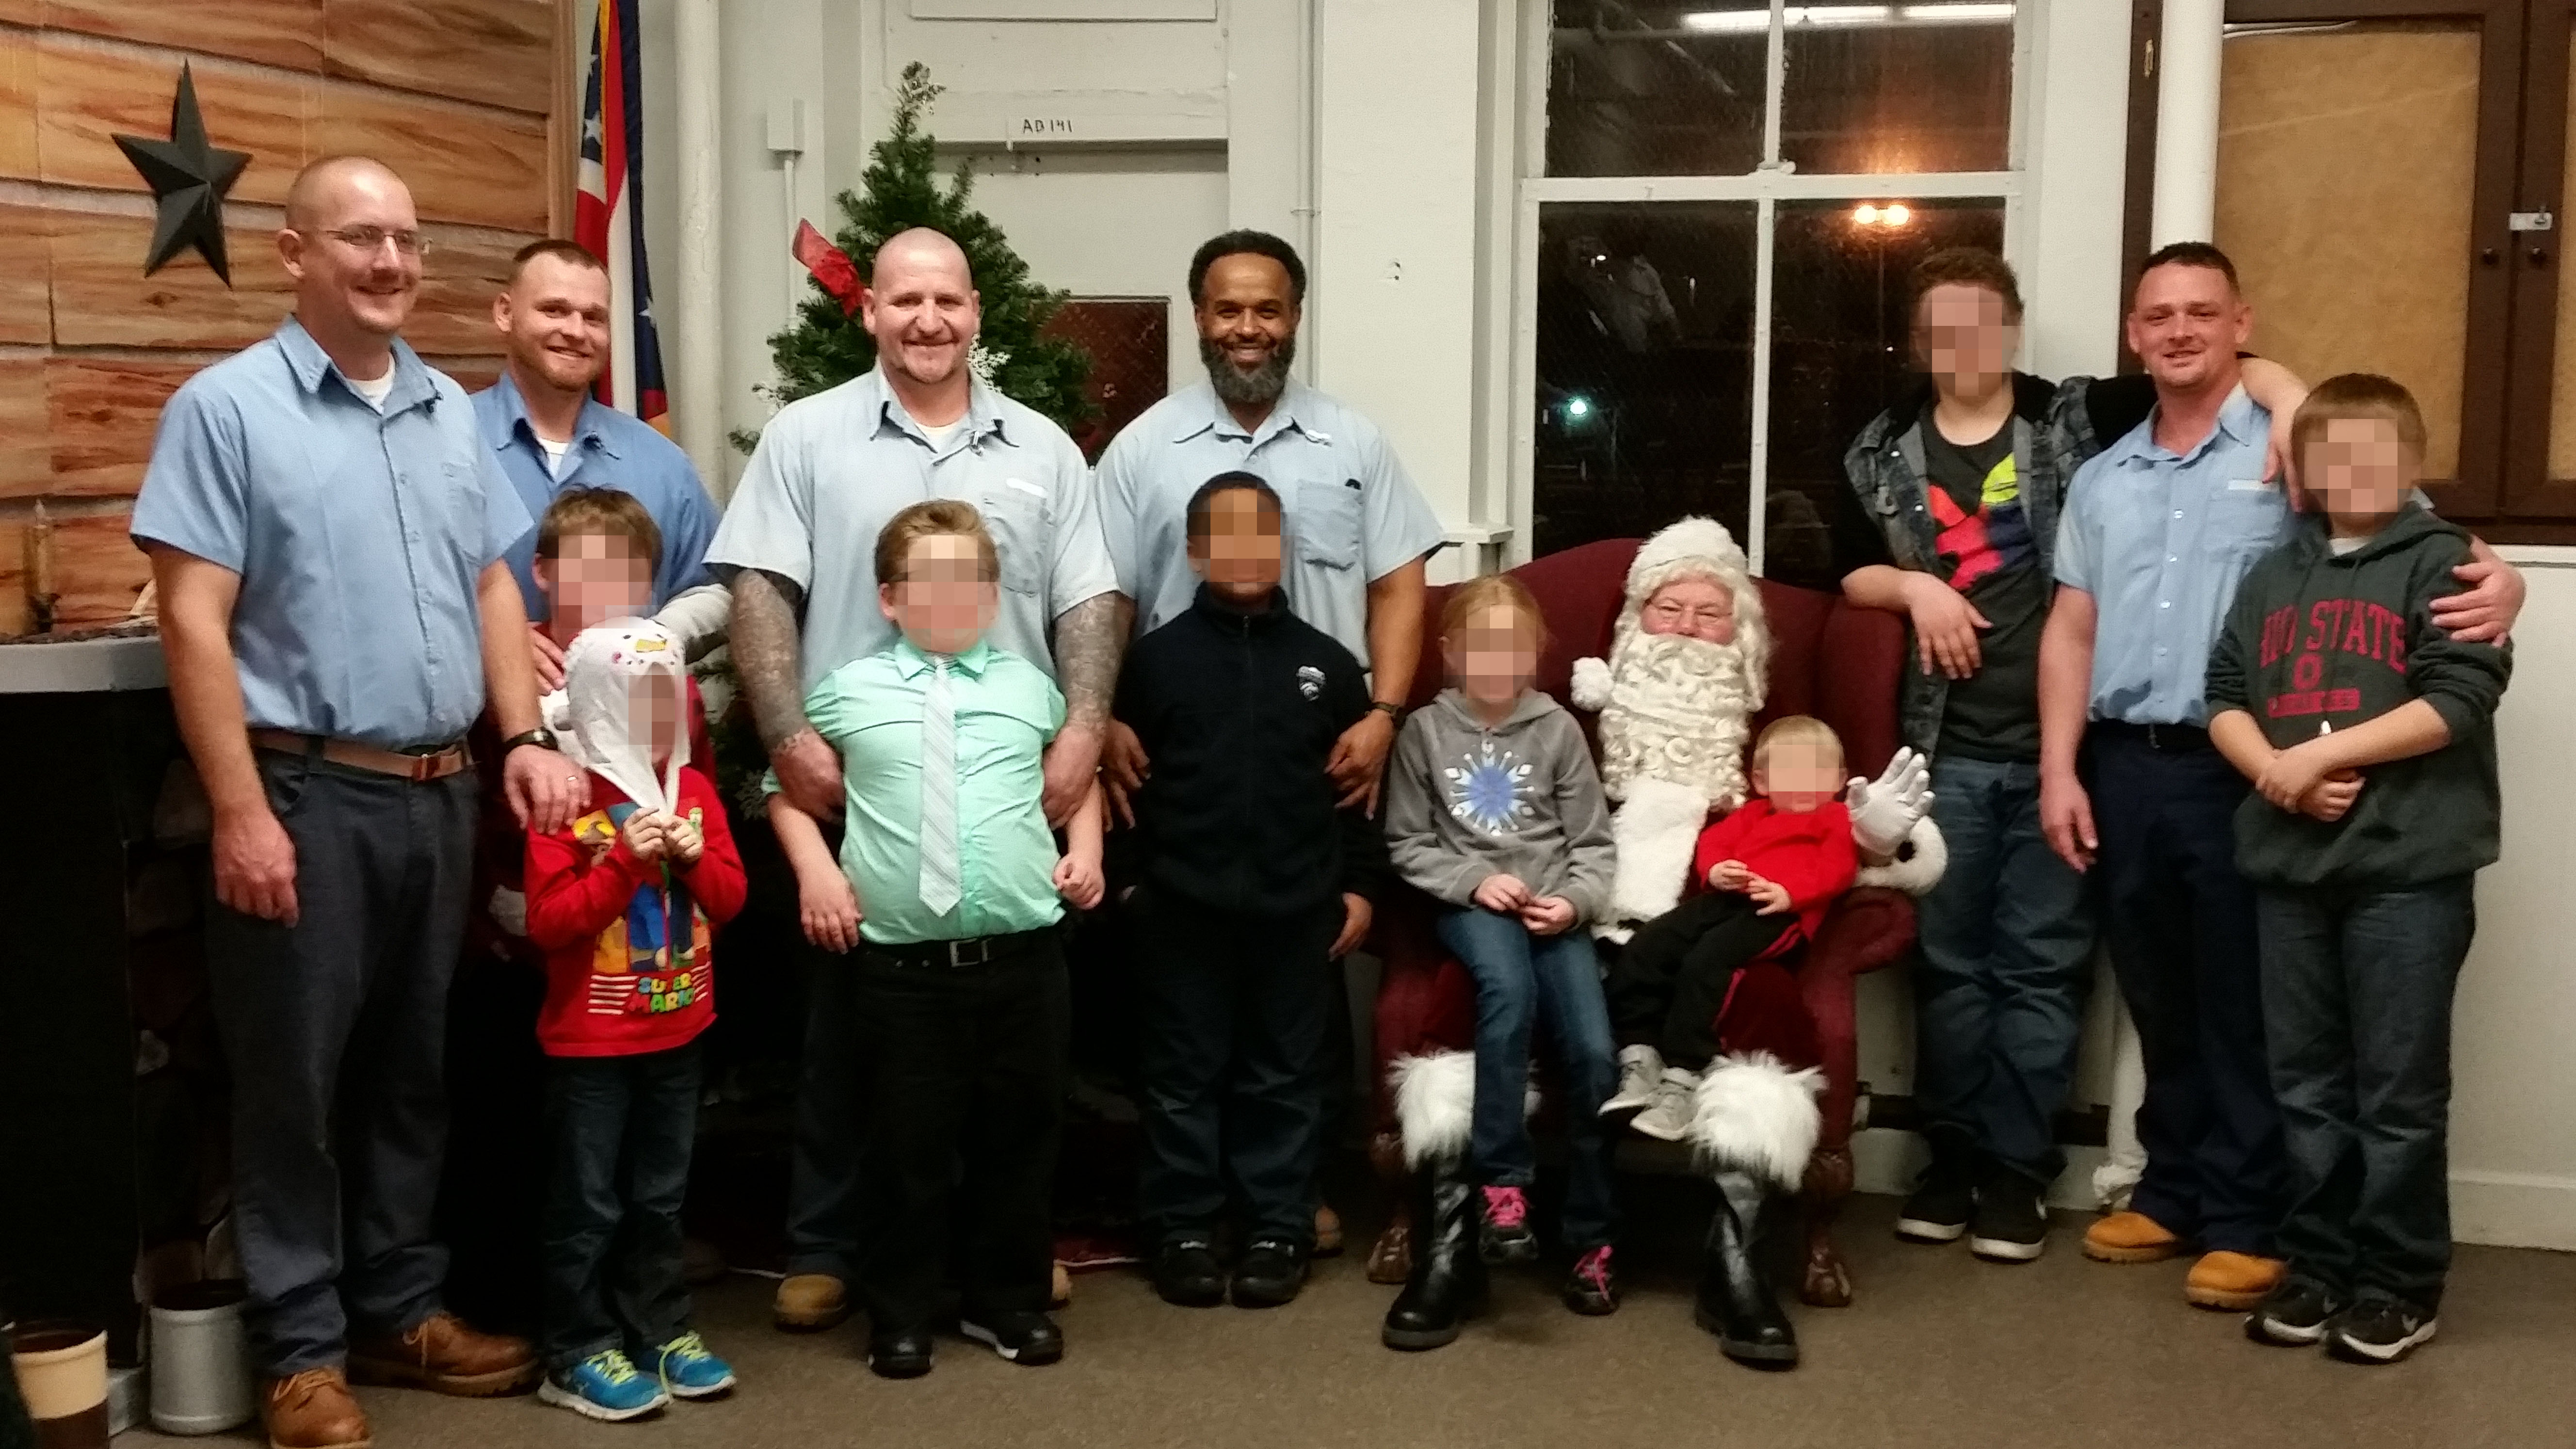 Cub Scouts Christmas at CCI